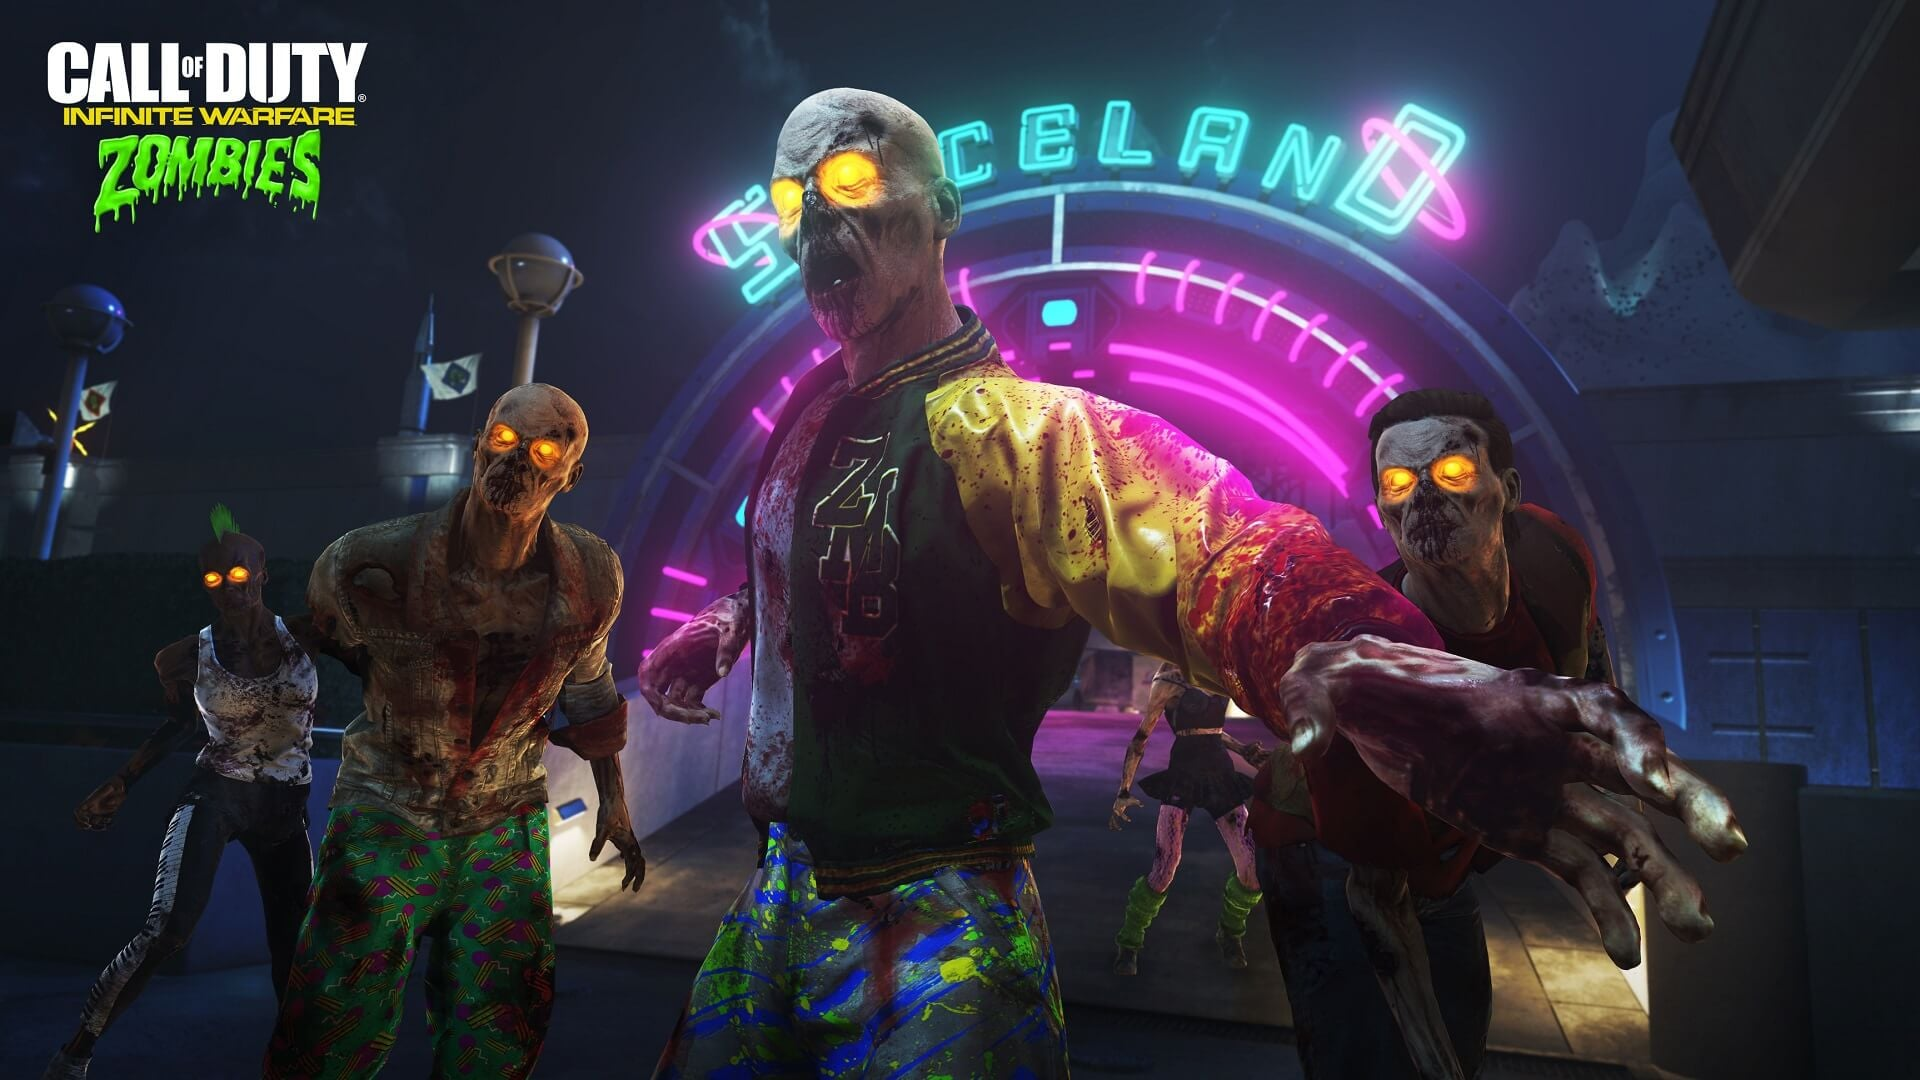 Call of Duty: Infinite Warfare Premieres Zombies in Spaceland